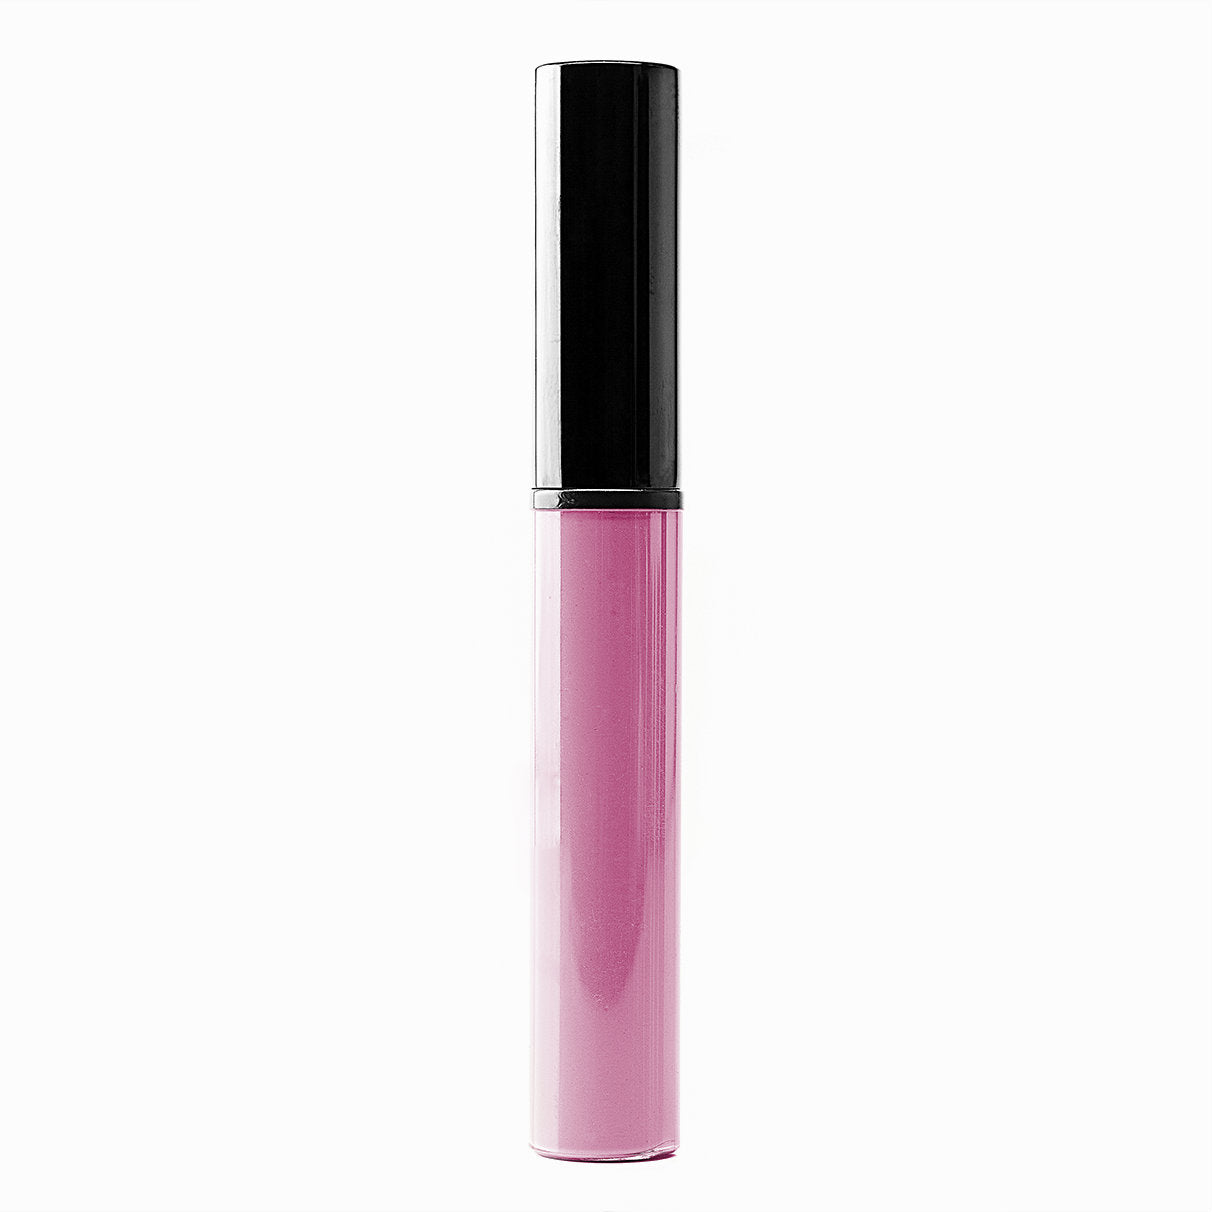 Gym Jelly Liquid Matte Lippie